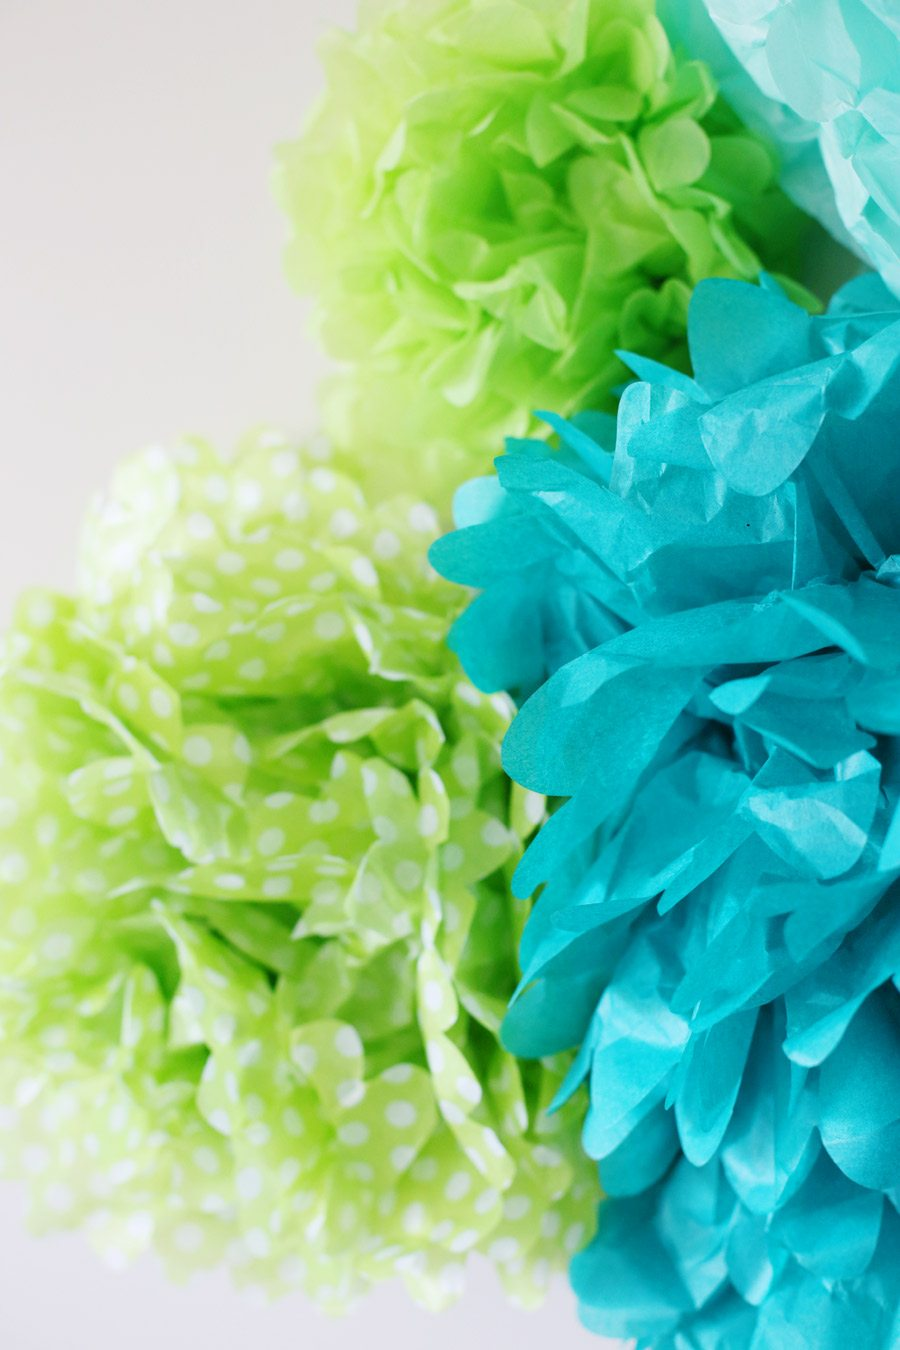 tissue paper pom 2 pcs tissue paper pompoms pom poms hanging flower balls fluffy wedding decor | home & garden, greeting cards & party supply, party supplies | ebay.